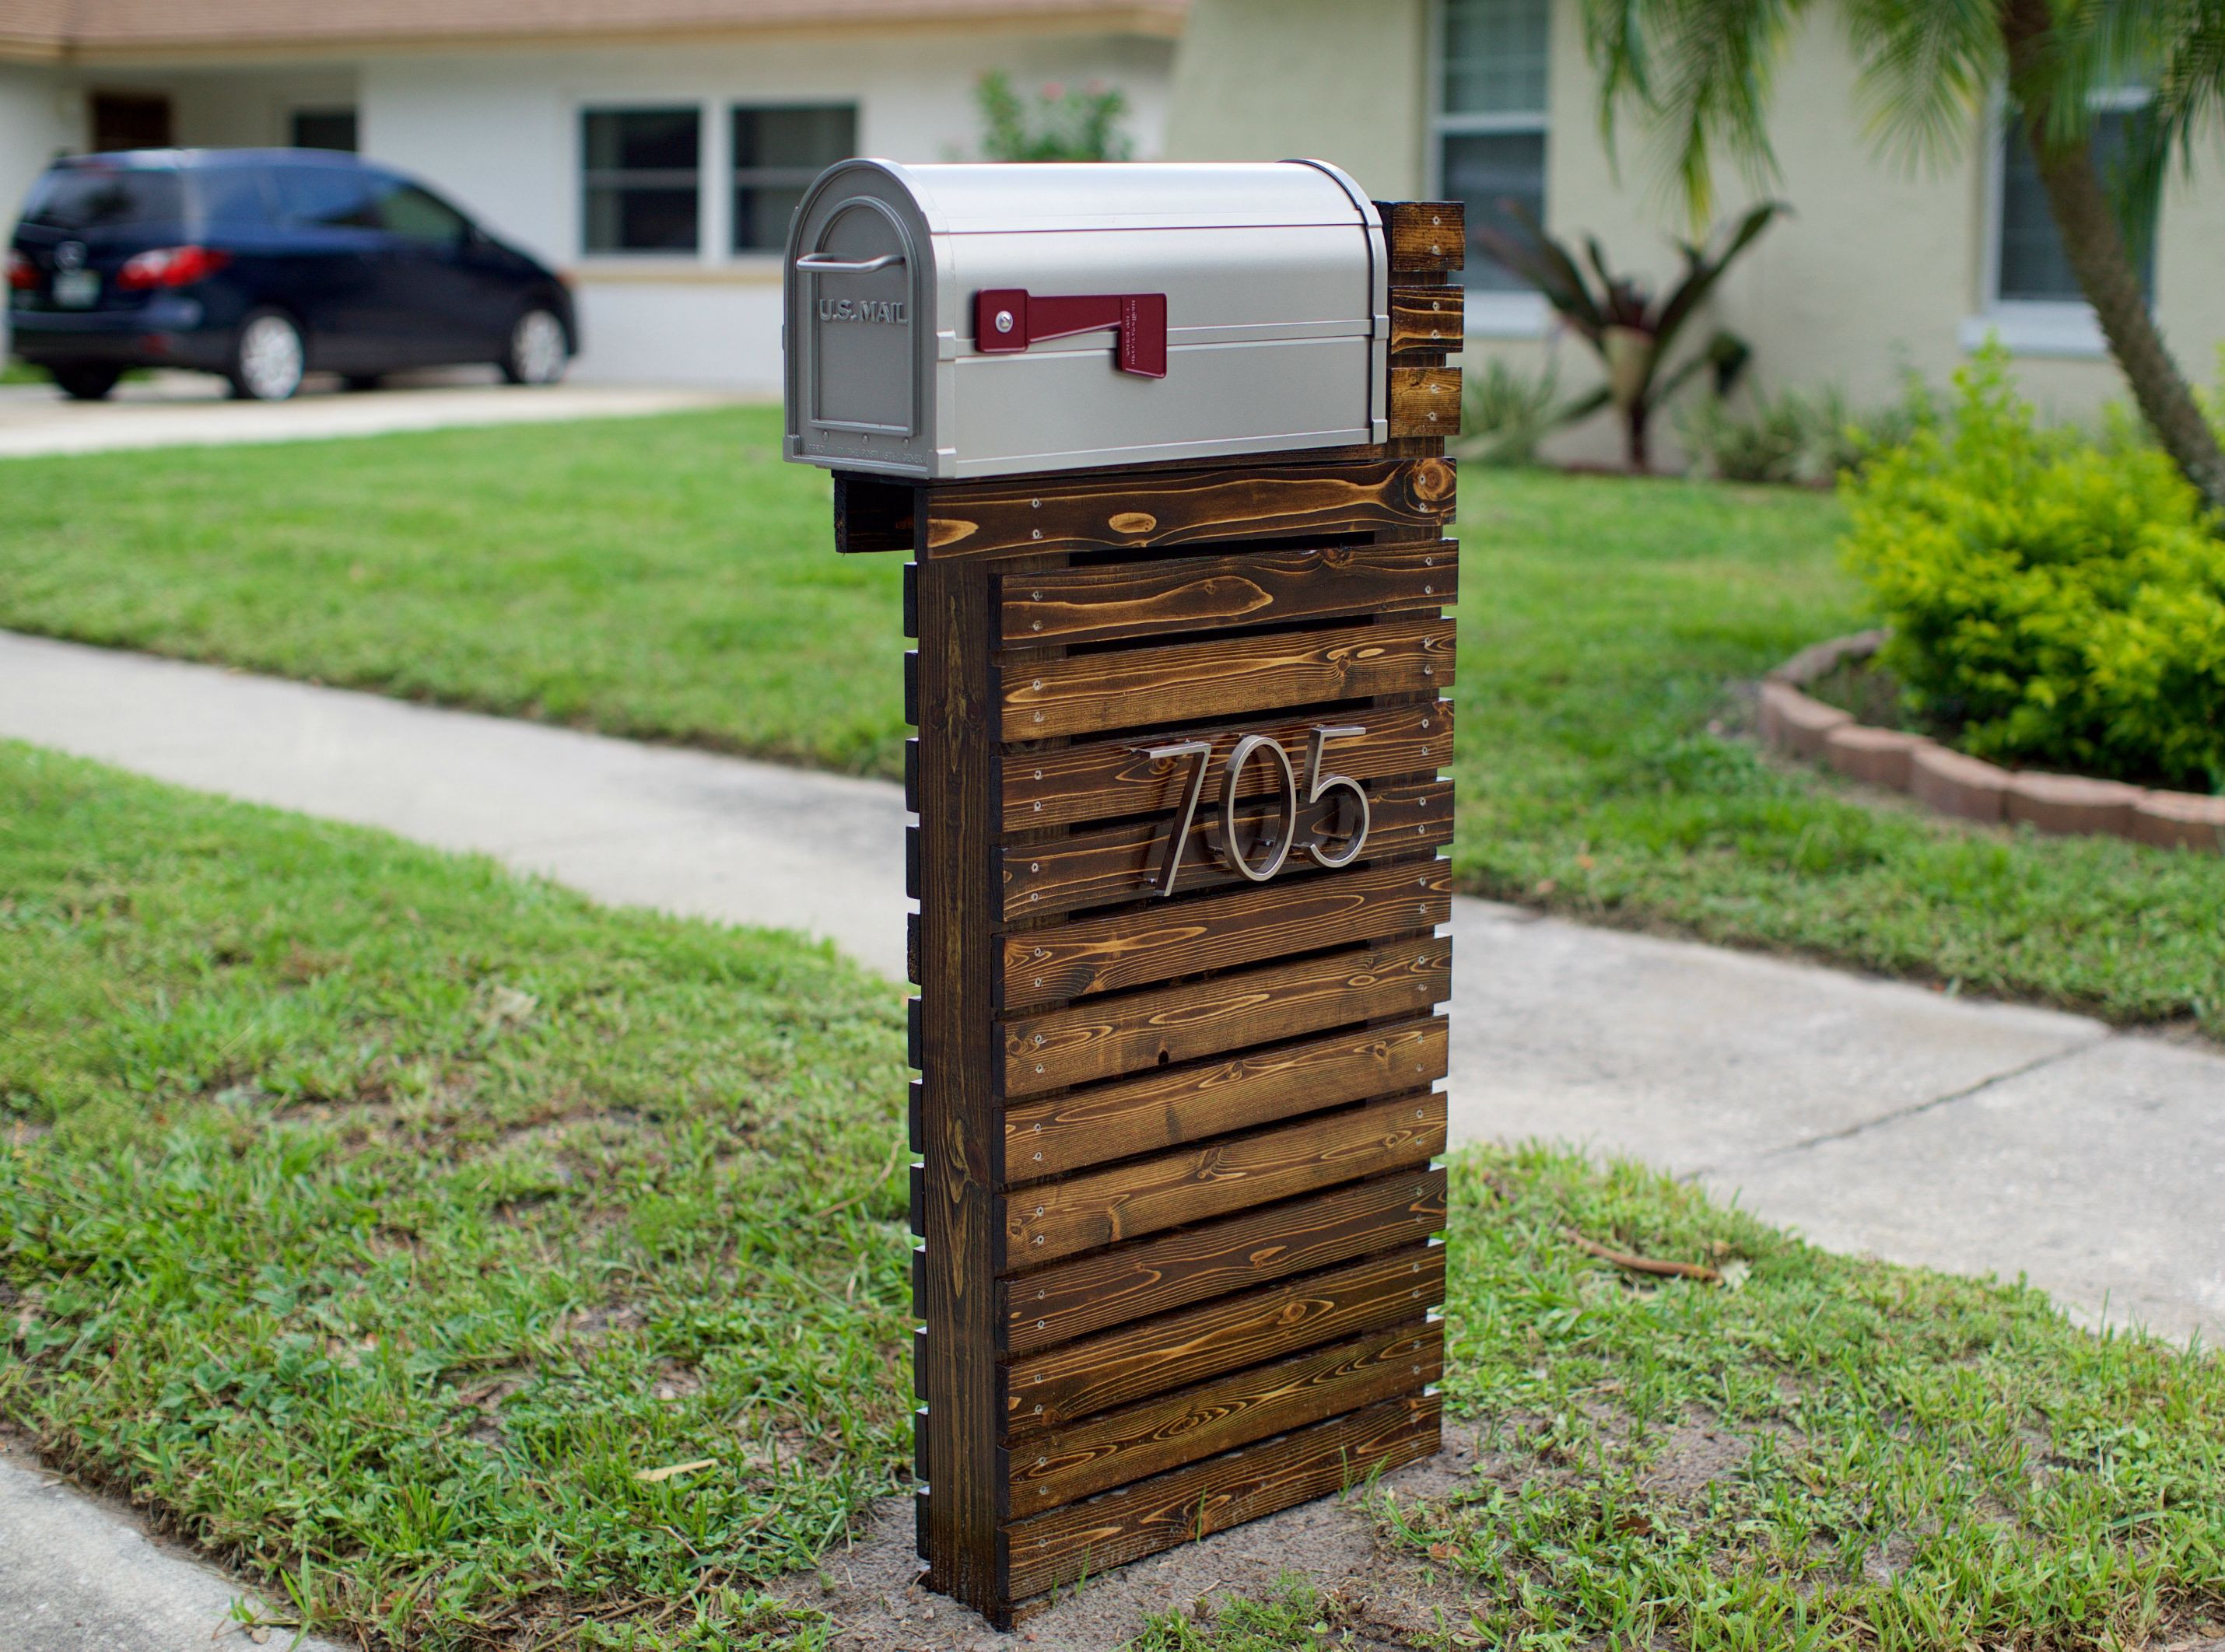 Best ideas about DIY Wooden Mailbox . Save or Pin Best 25 Diy mailbox ideas on Pinterest Now.